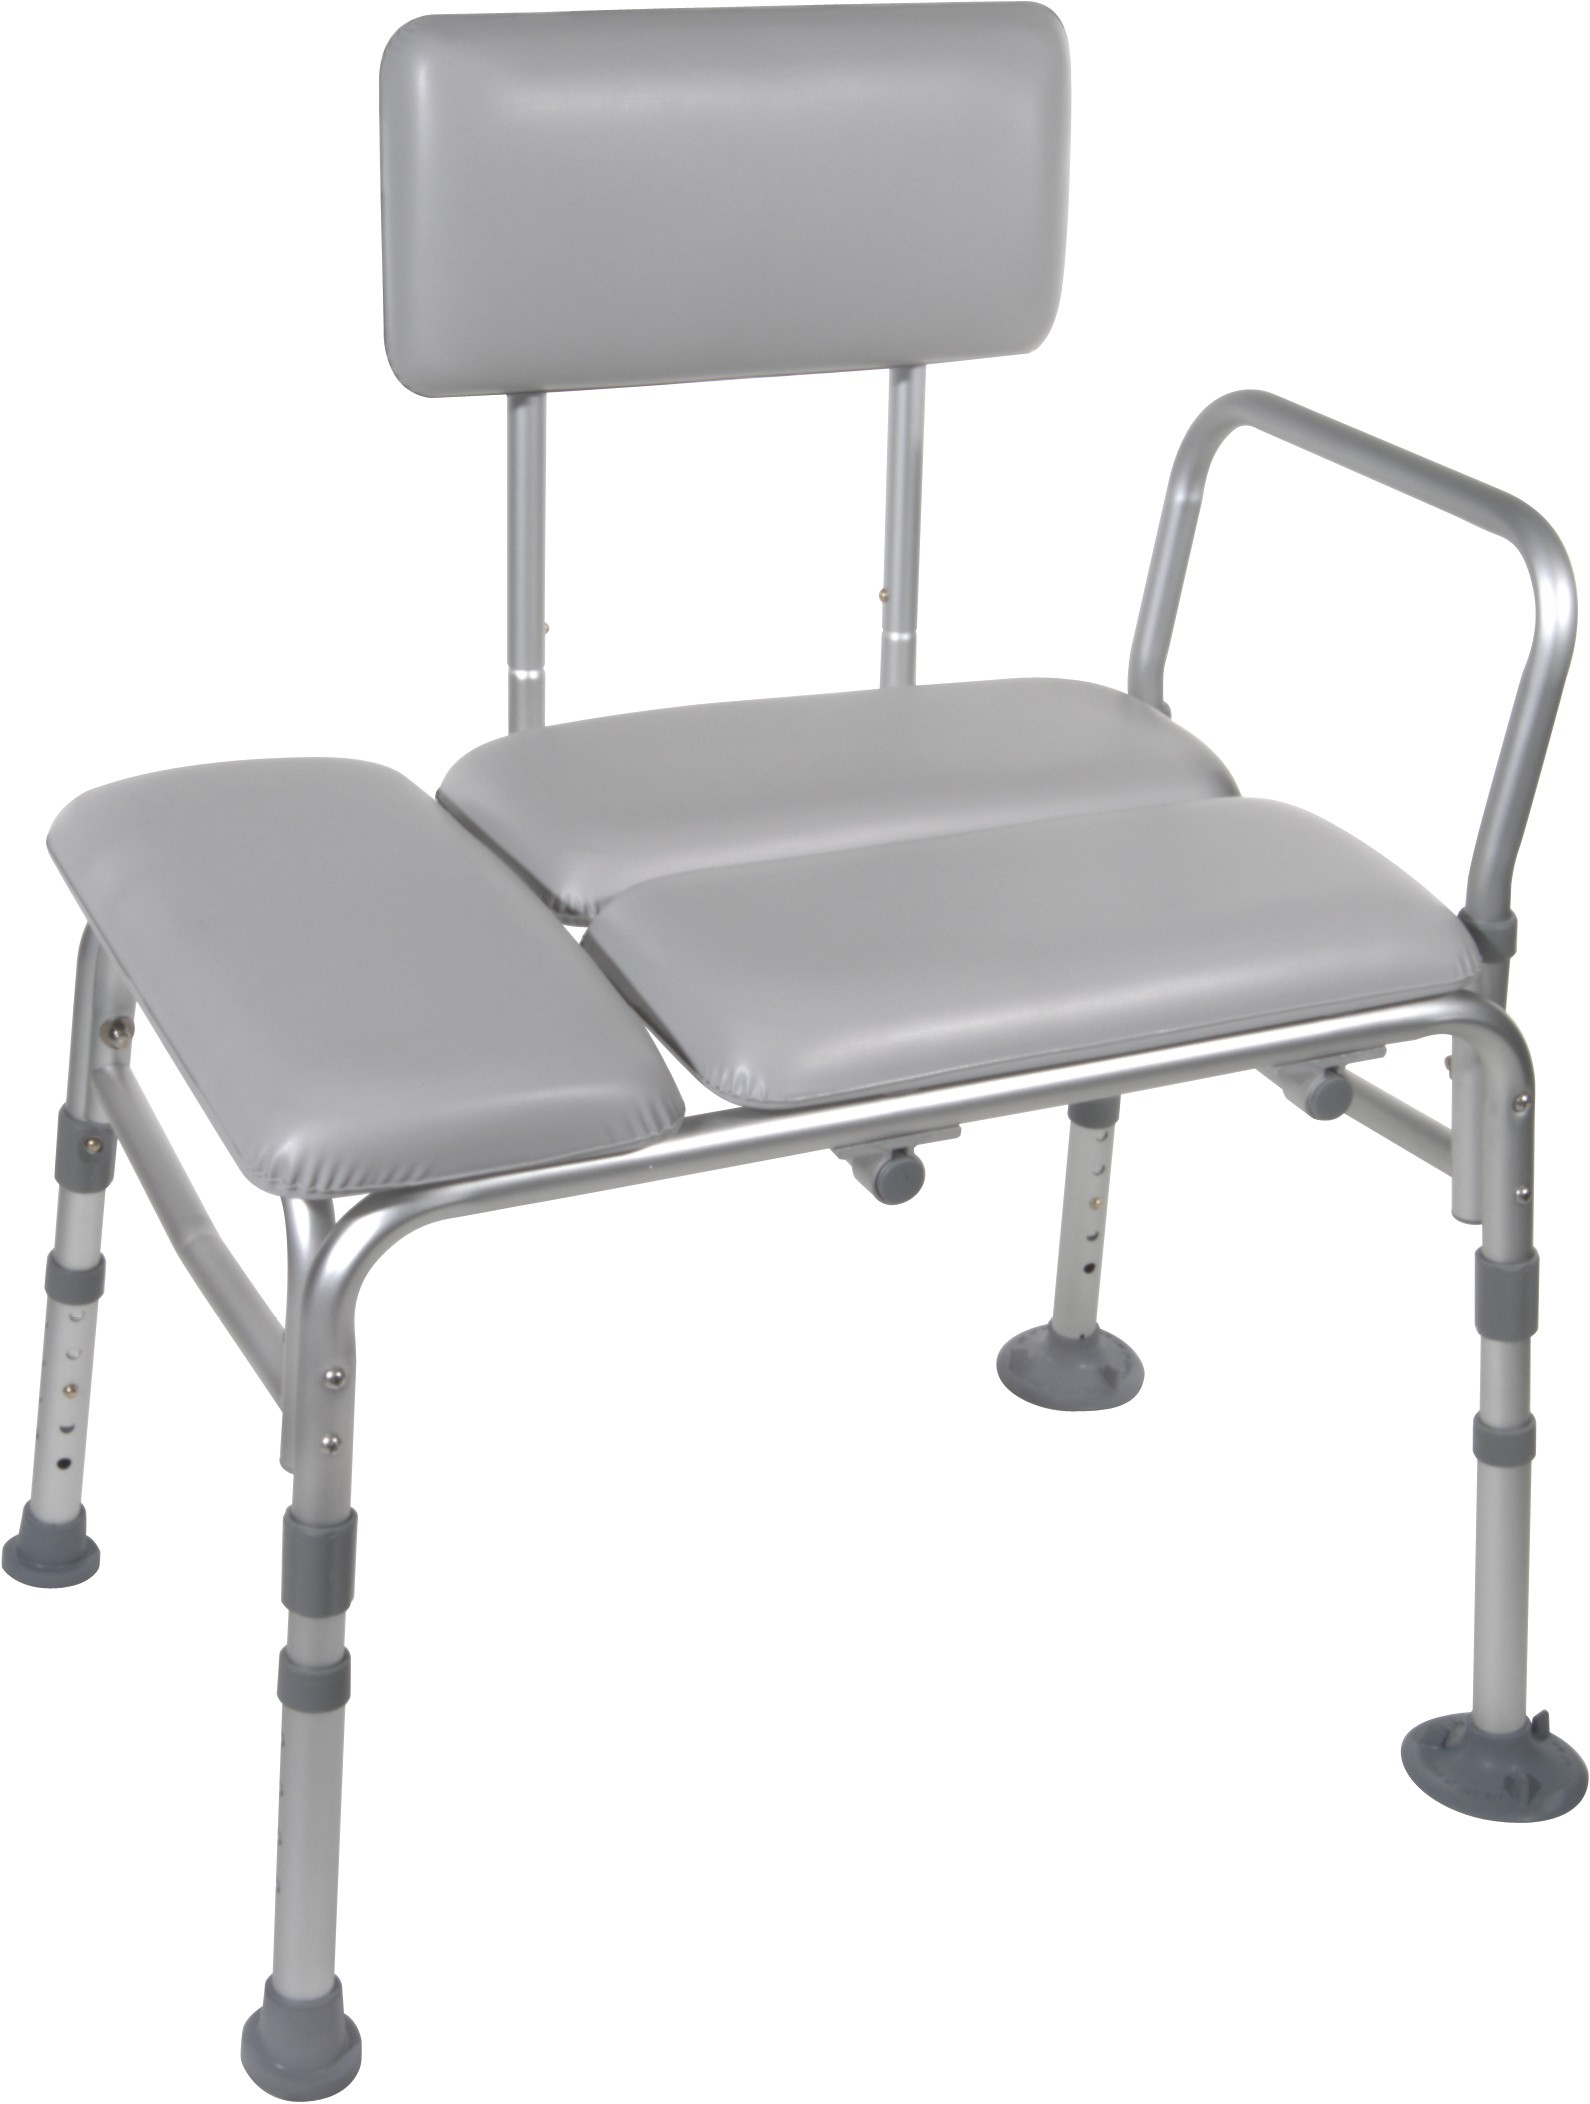 Drive Medical Adjustable Bath Transfer Bench Padded